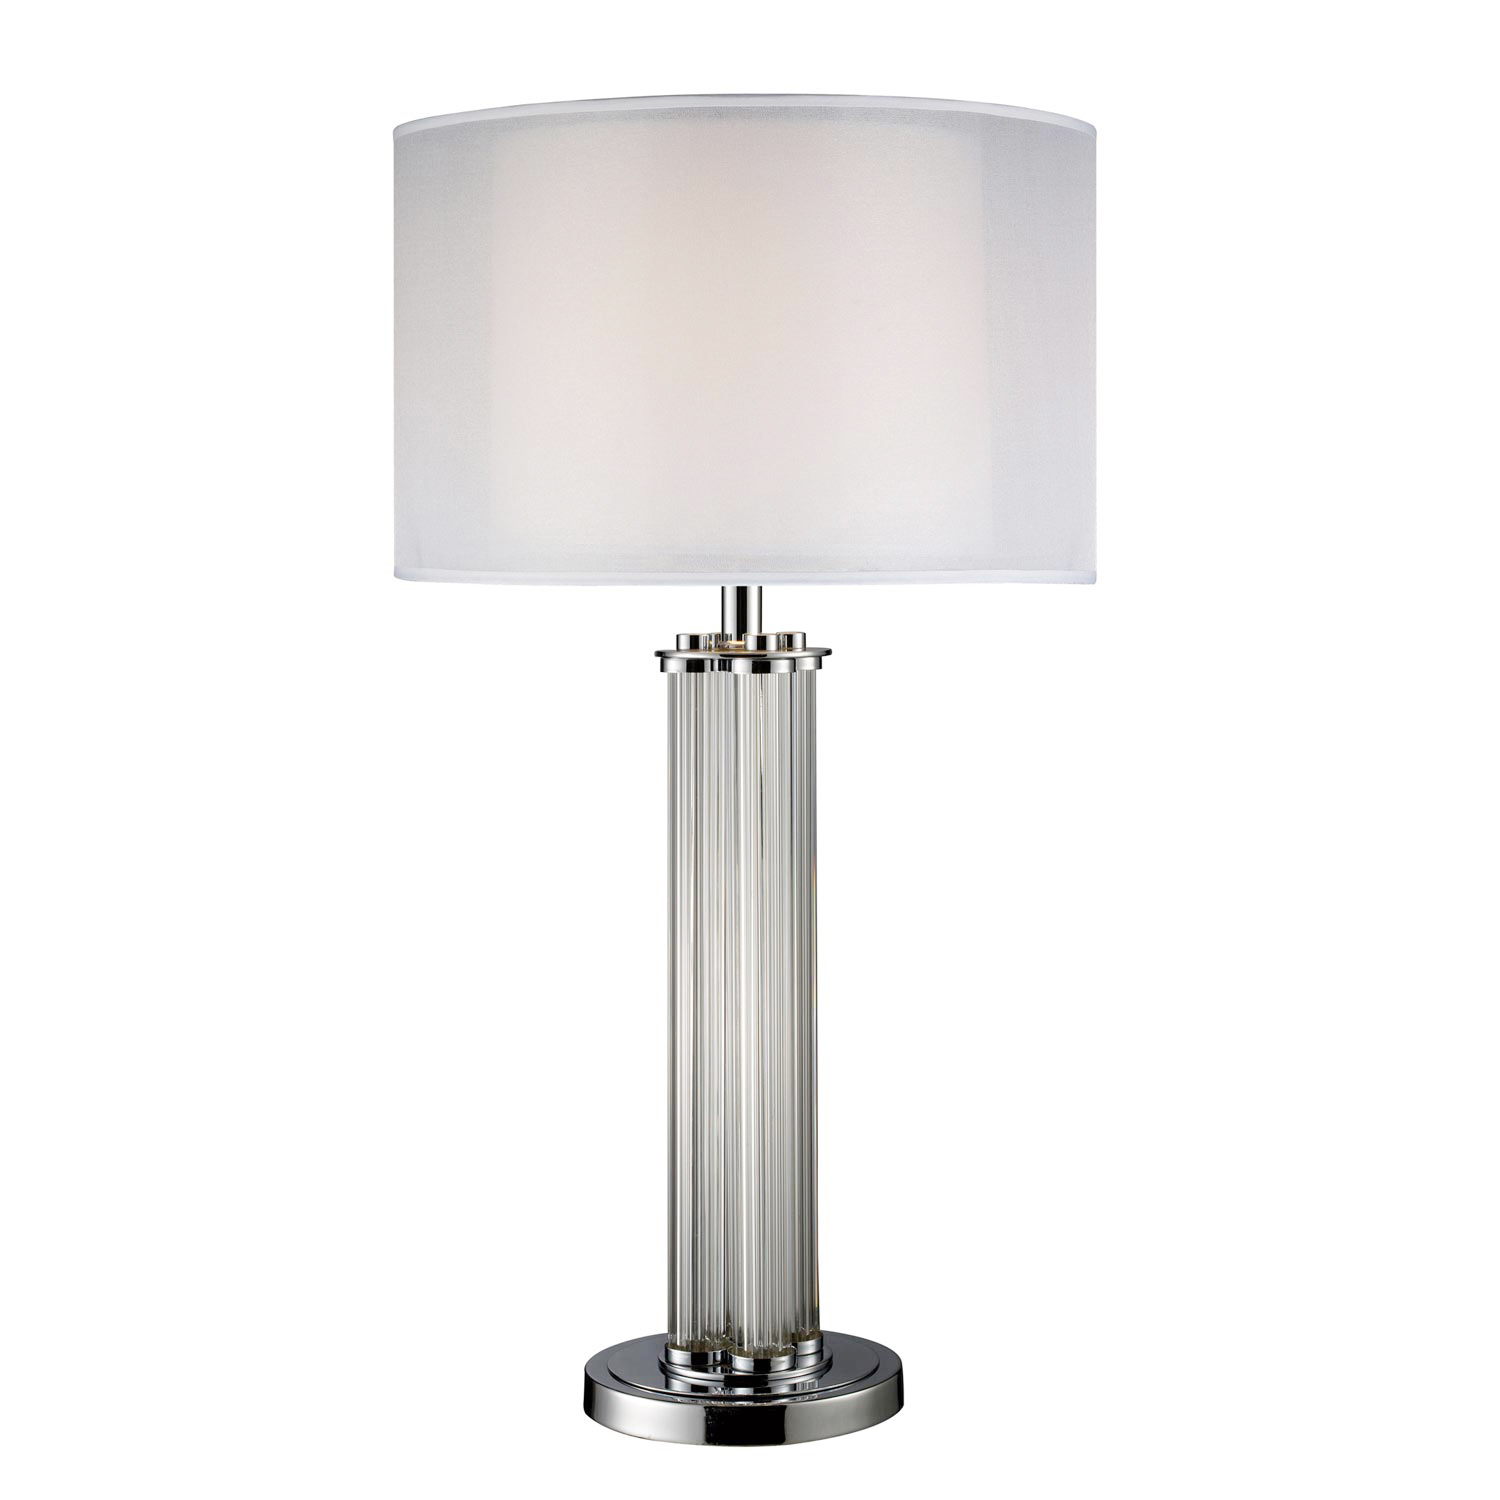 Elk Lighting D1614 Hallstead Table Lamp - Chrome